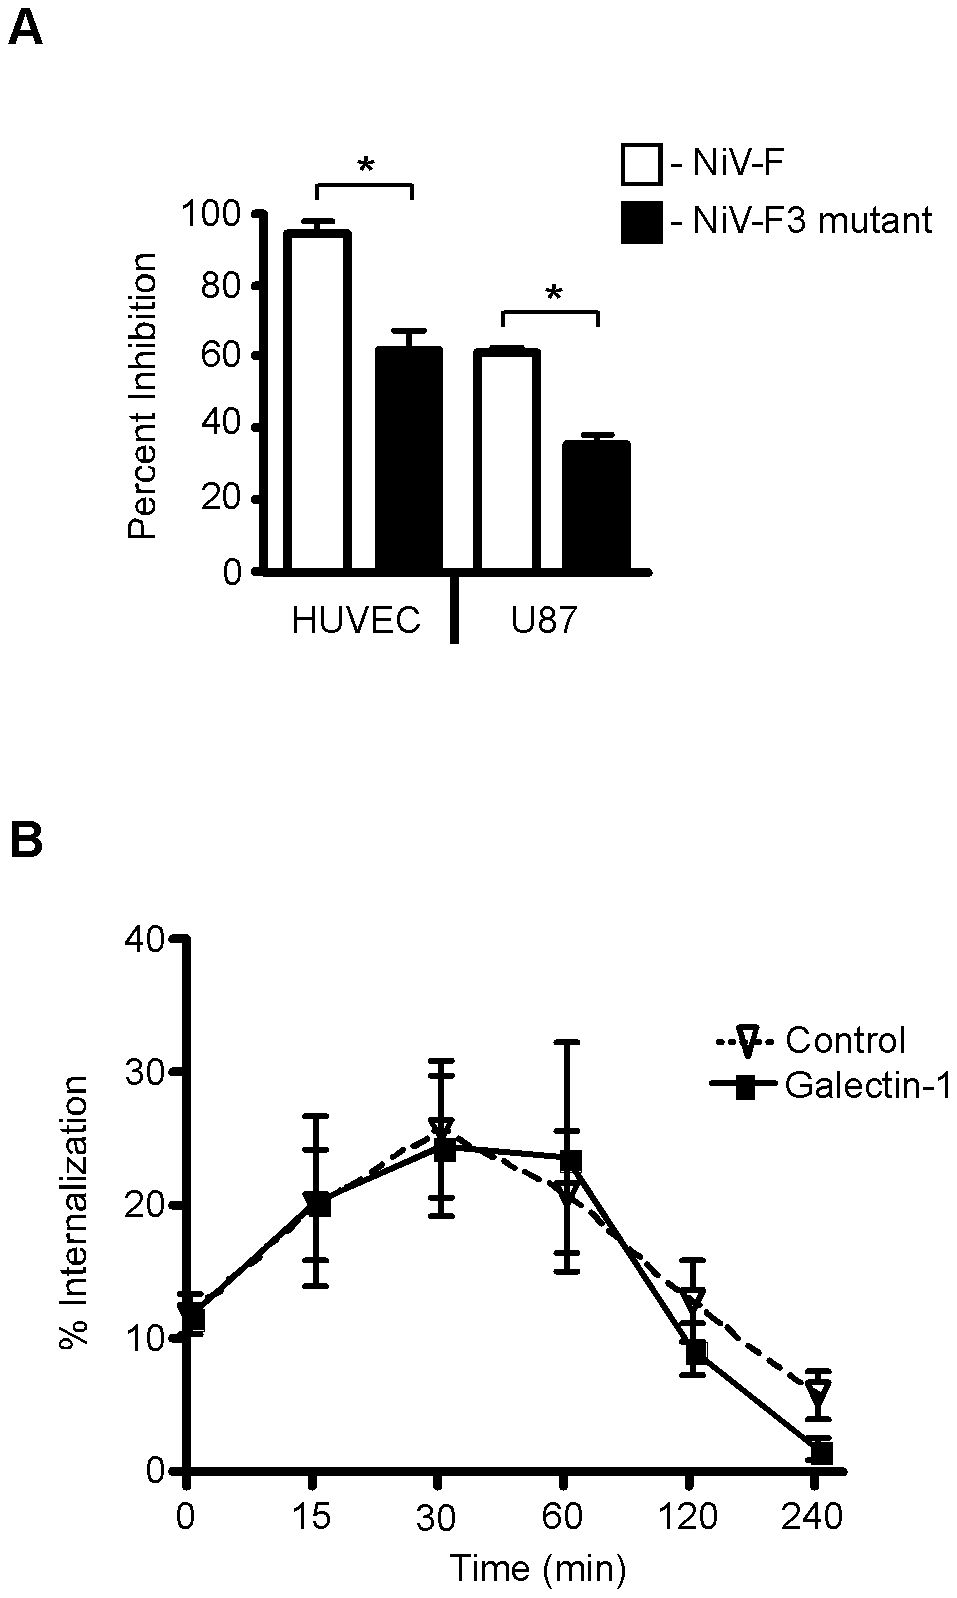 The F3 glycan is critical for galectin-1 inhibition of NiV-F maturation and function.